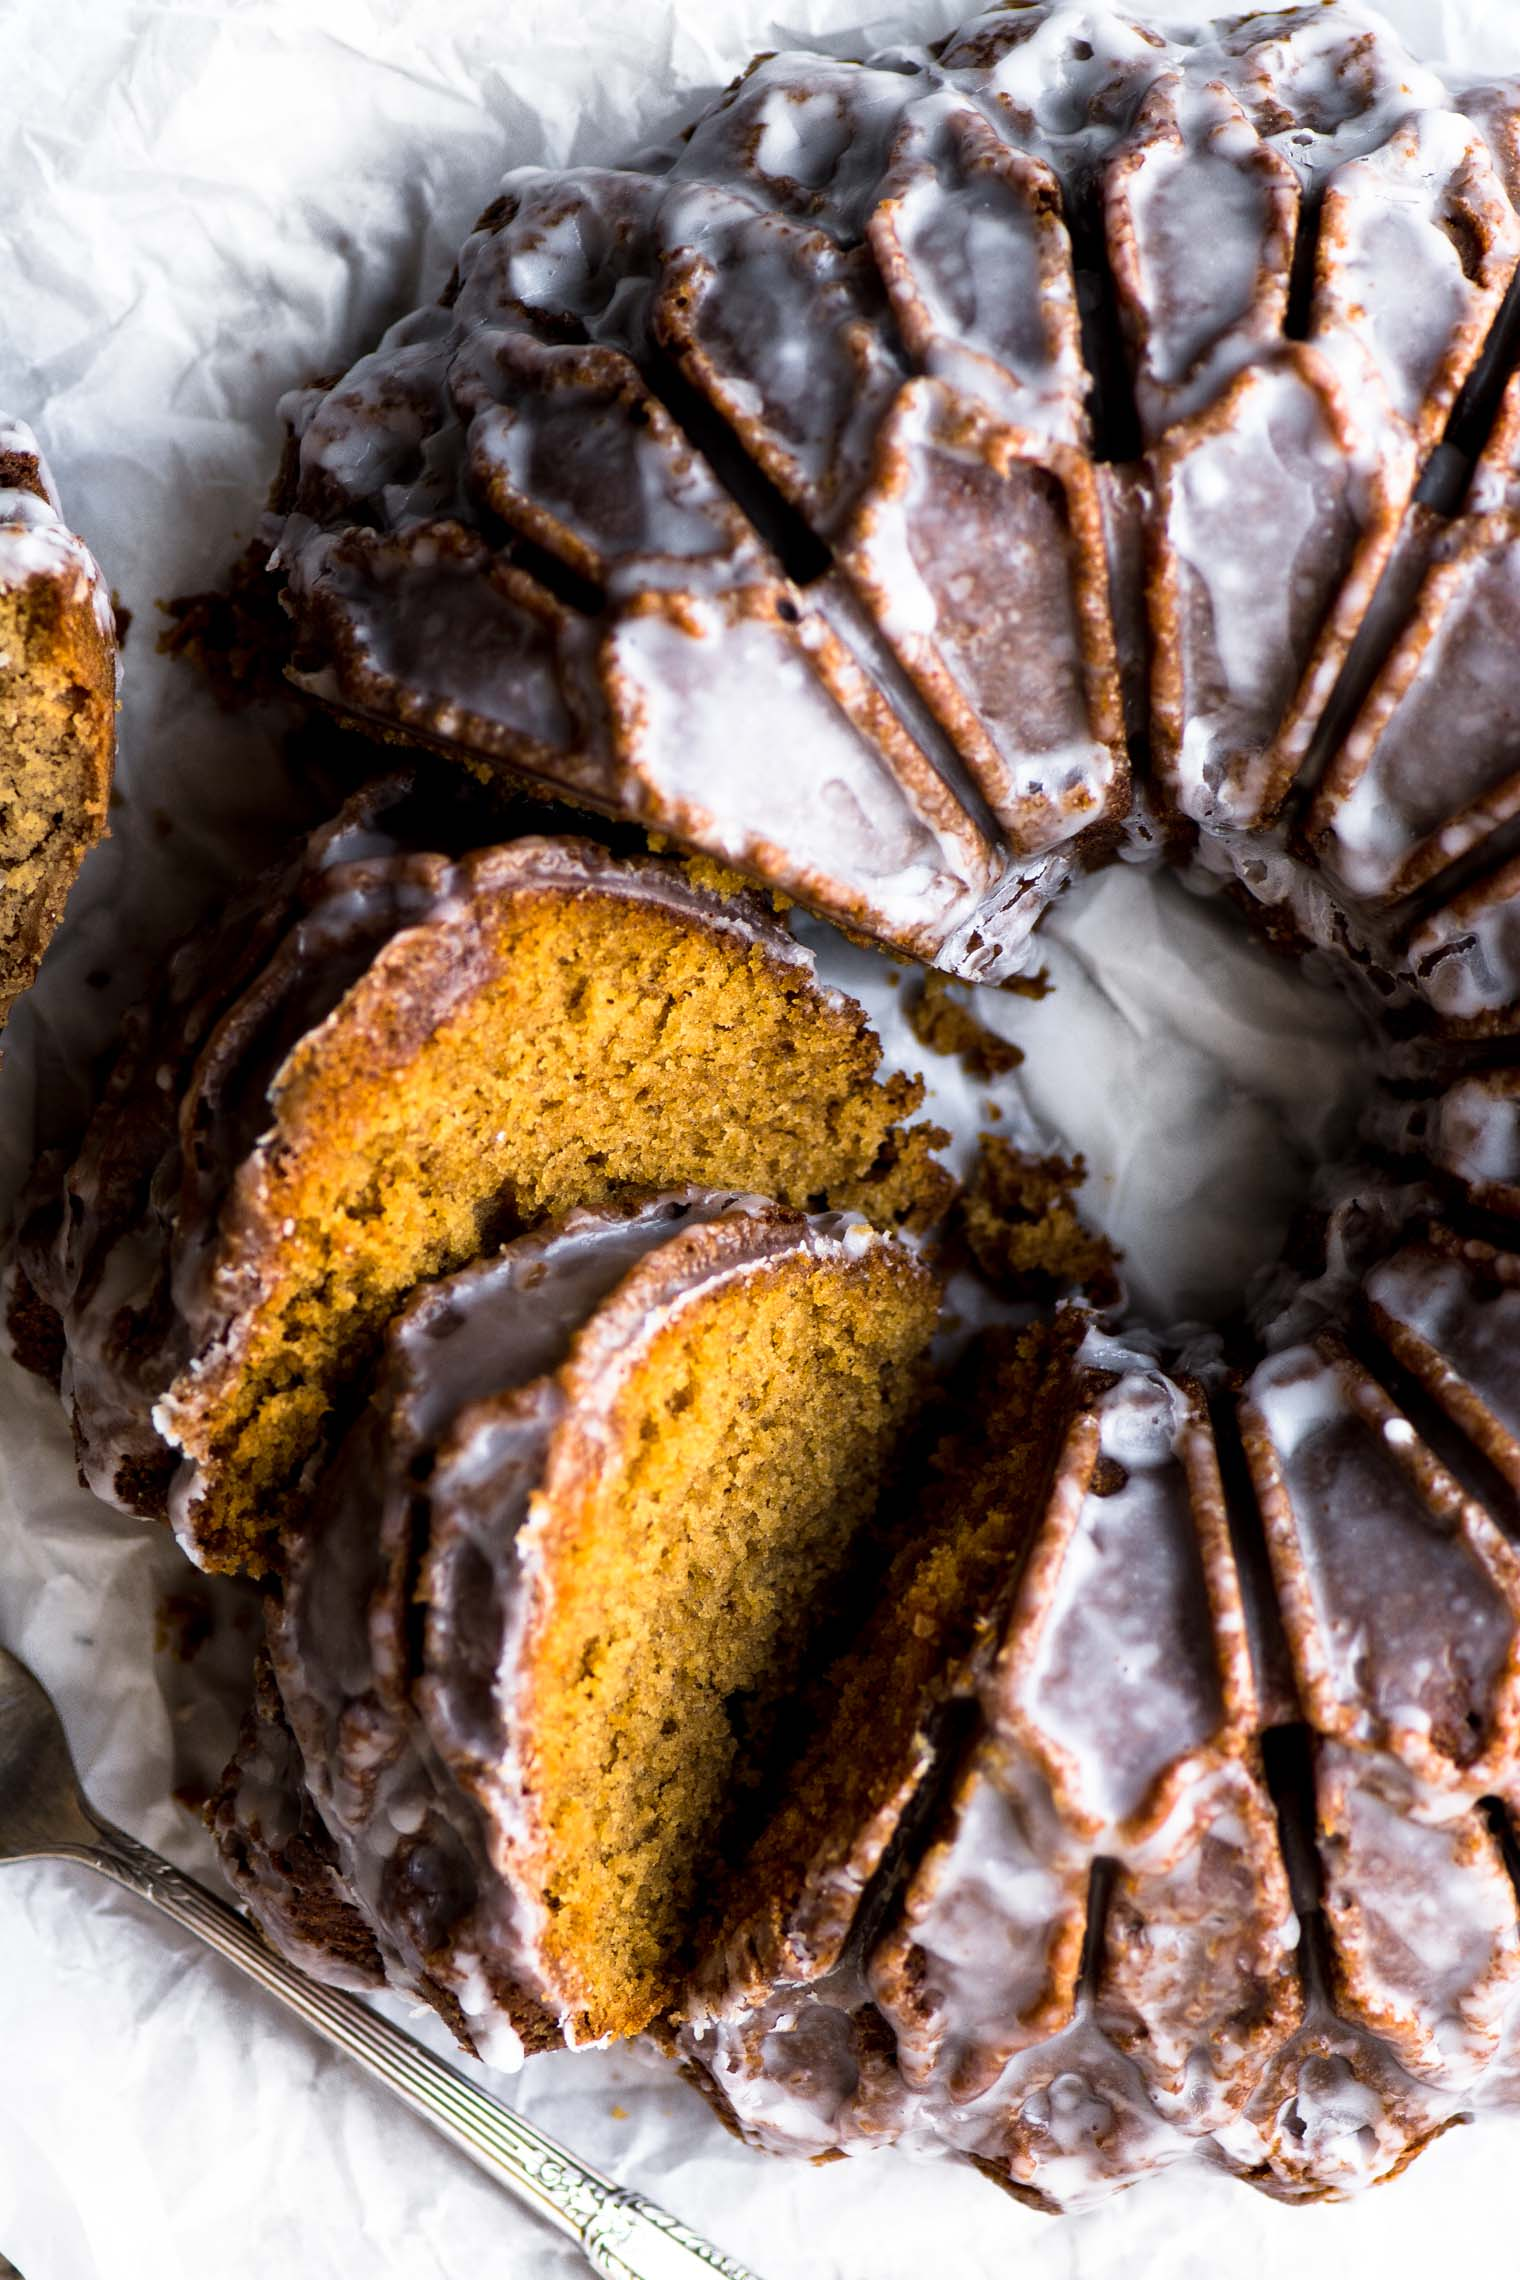 Glazed Gingerbread Bundt Cake, partially sliced